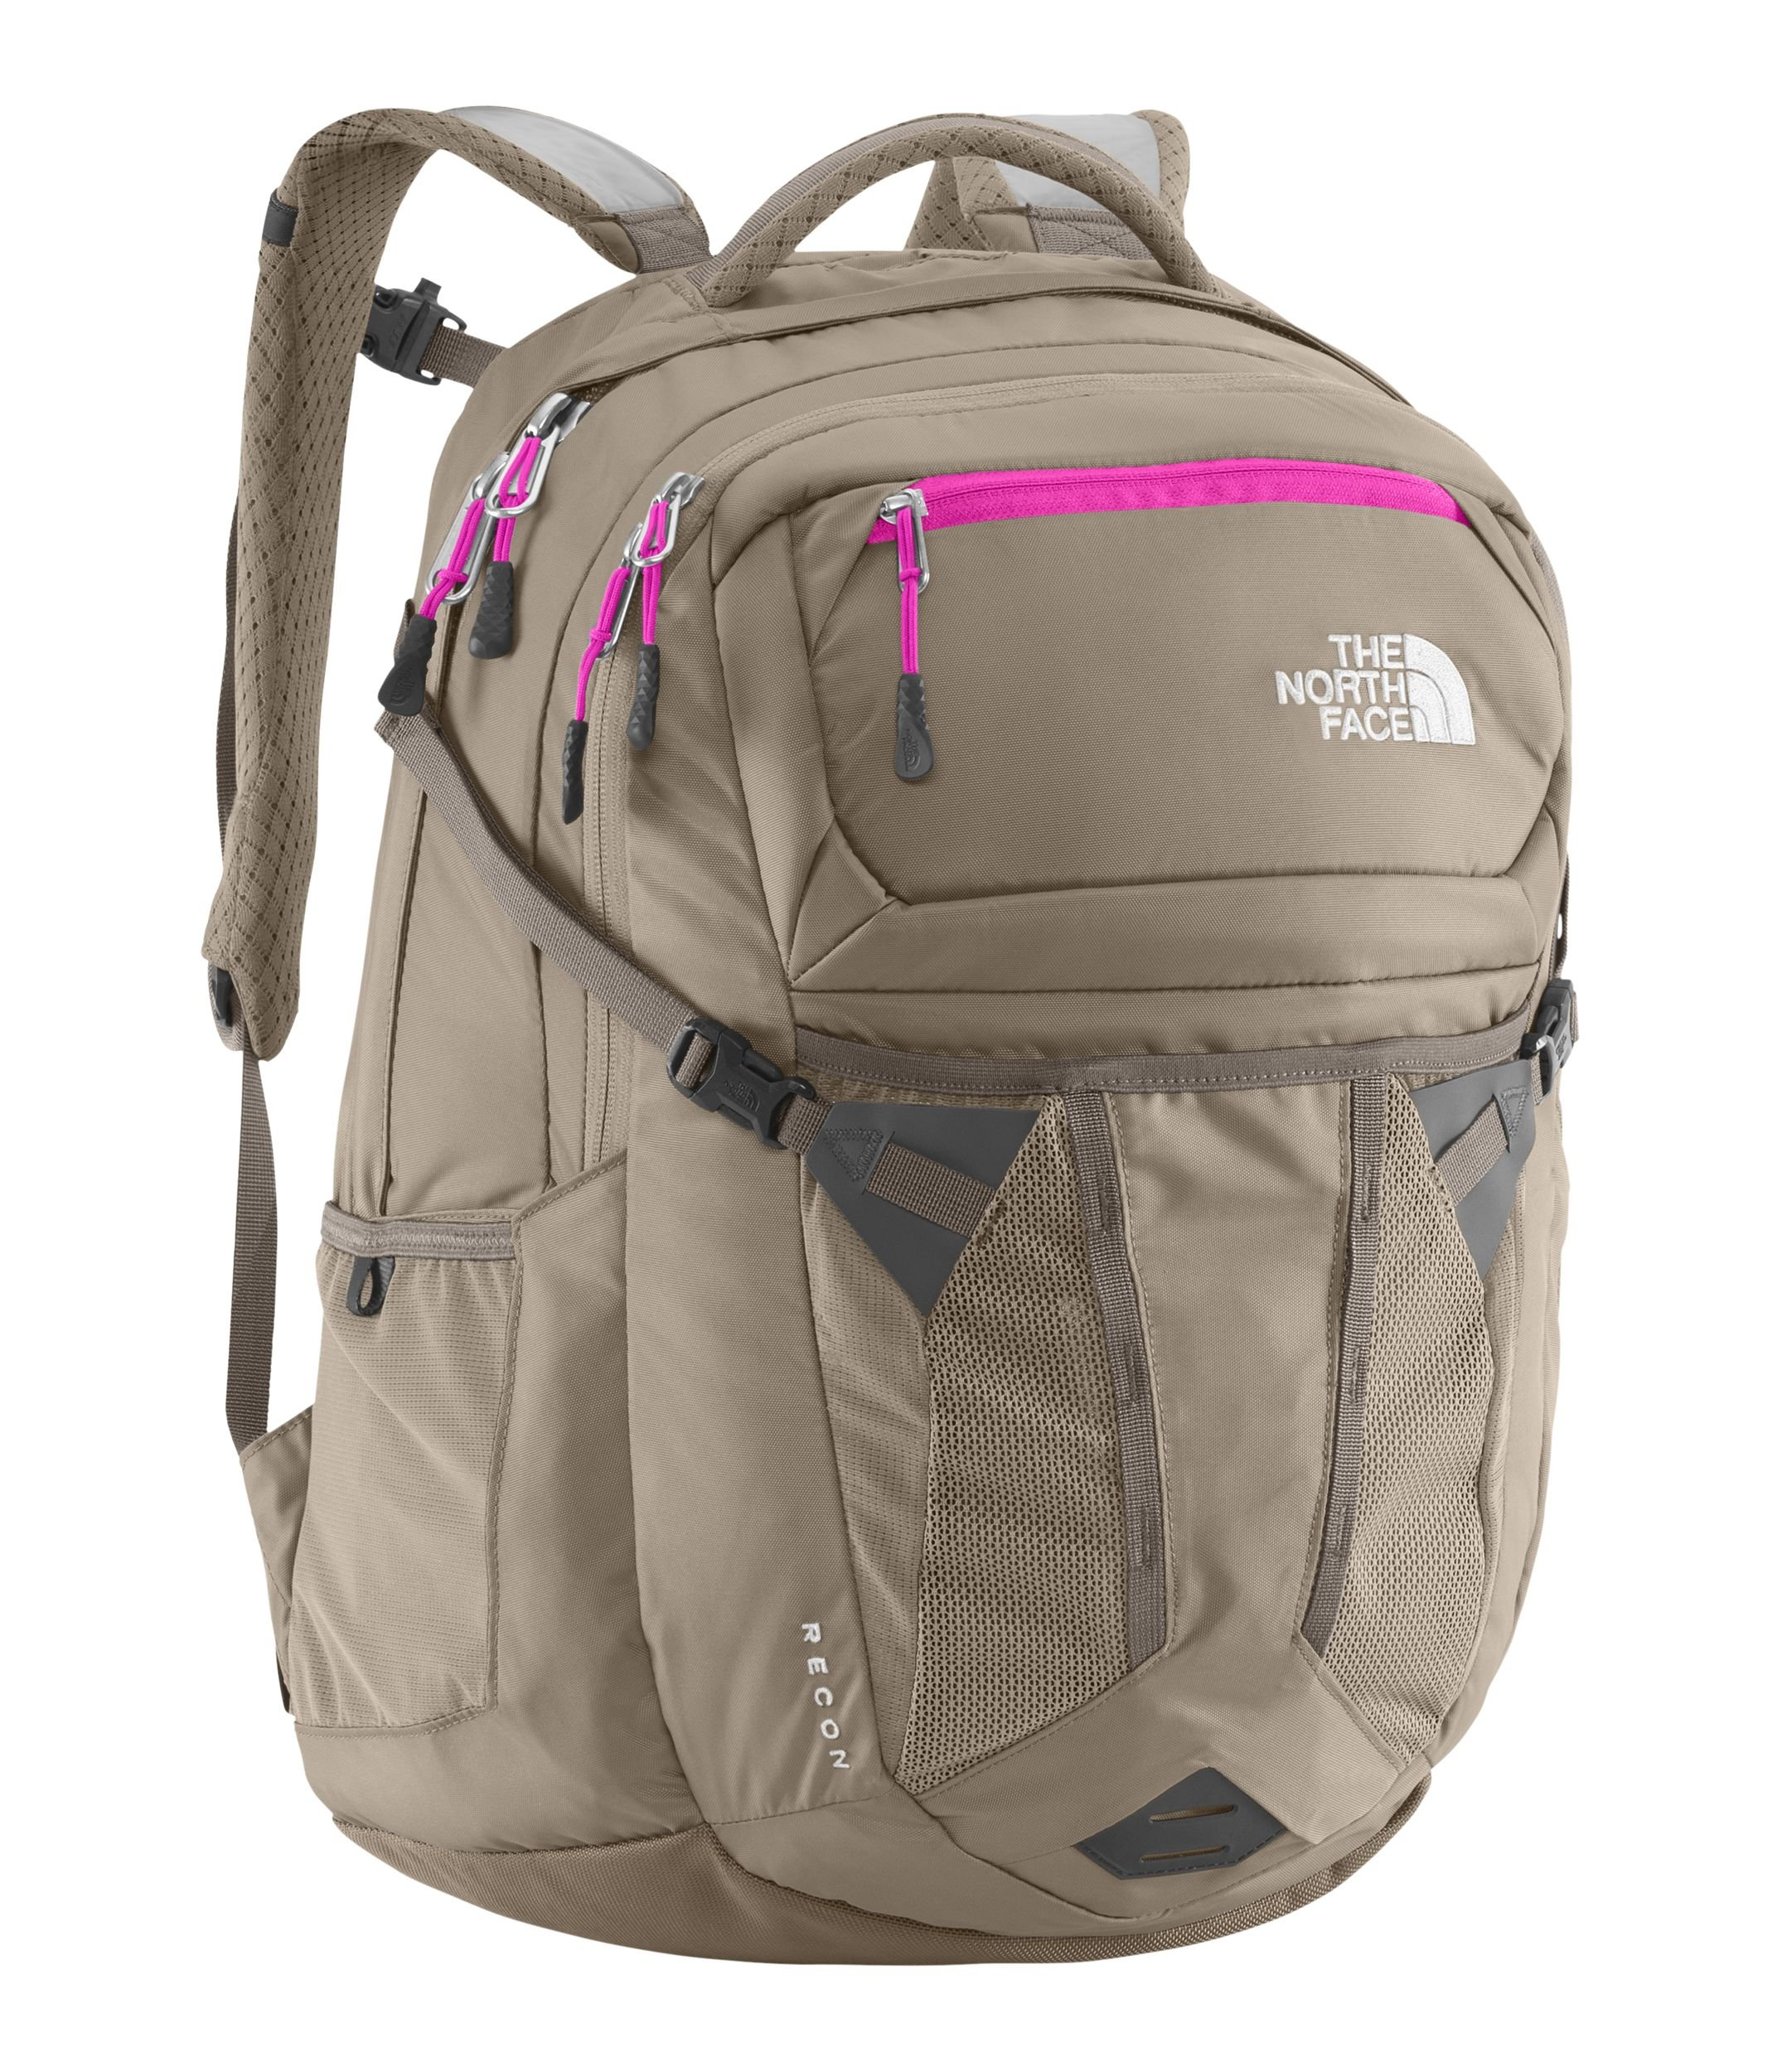 The North Face Women's Women's Recon Brindle Brown/Luminous Pink Backpack by The North Face